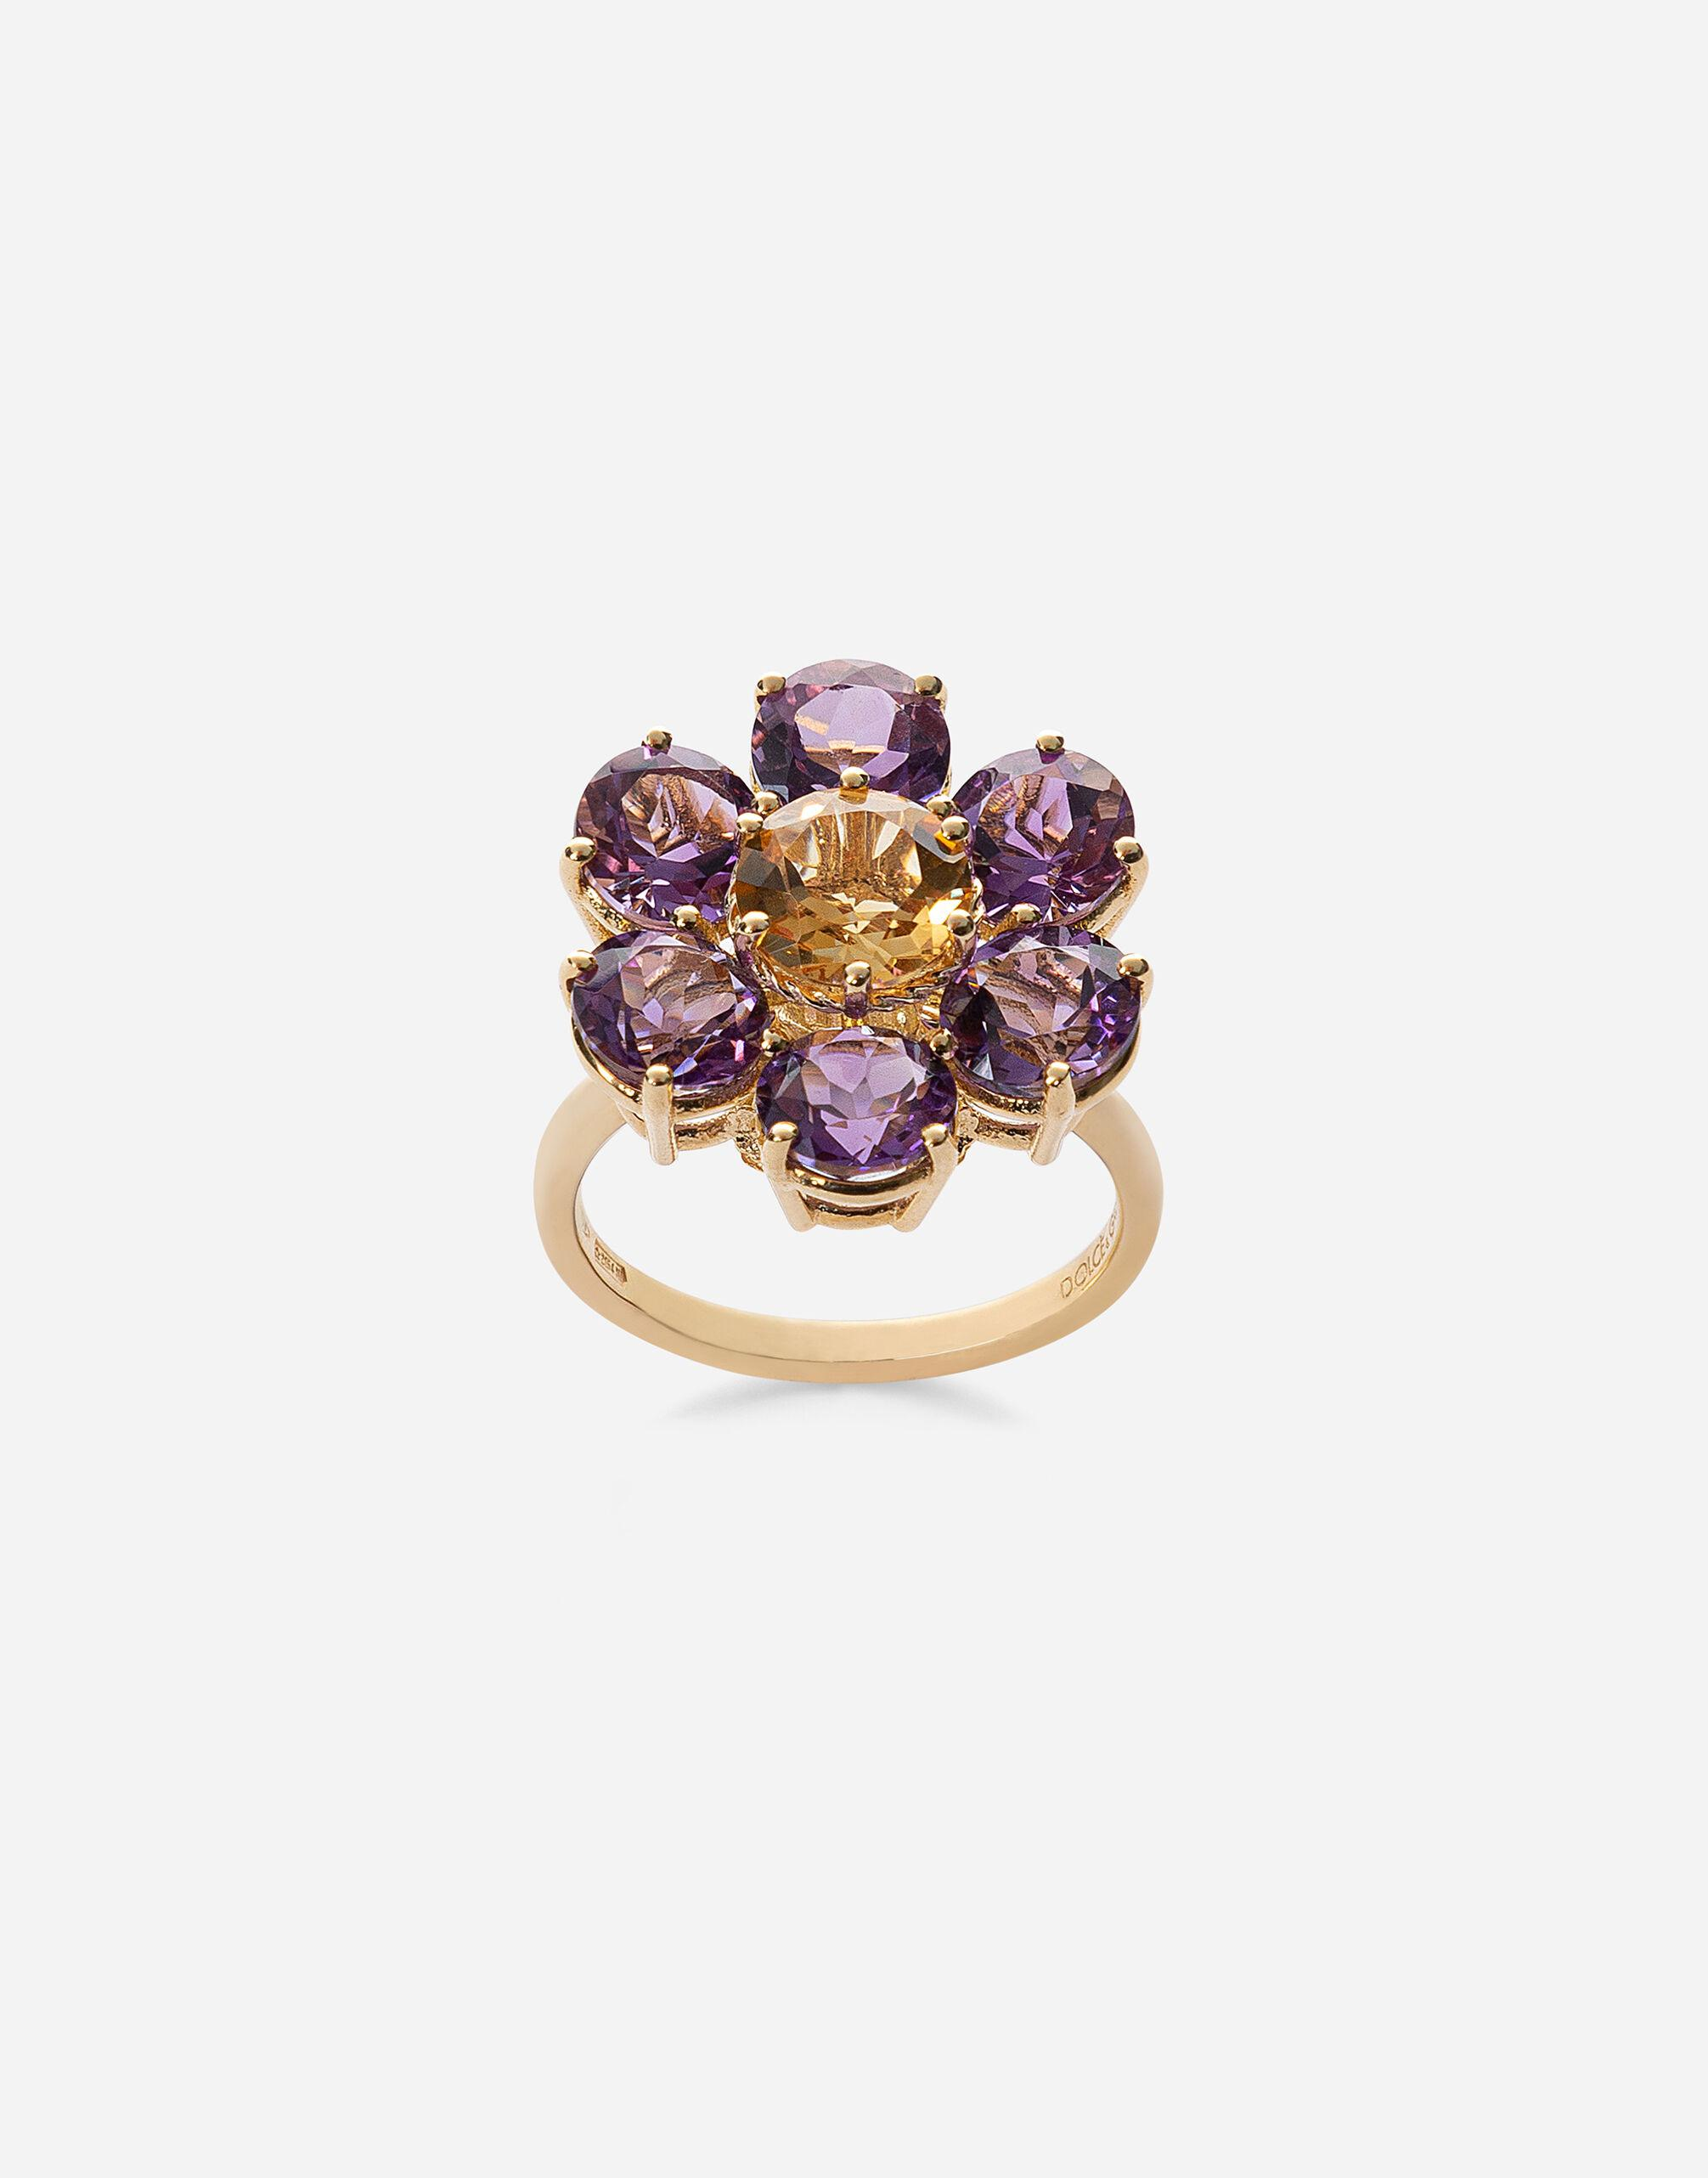 Spring ring in yellow 18kt gold with amethyst floral motif